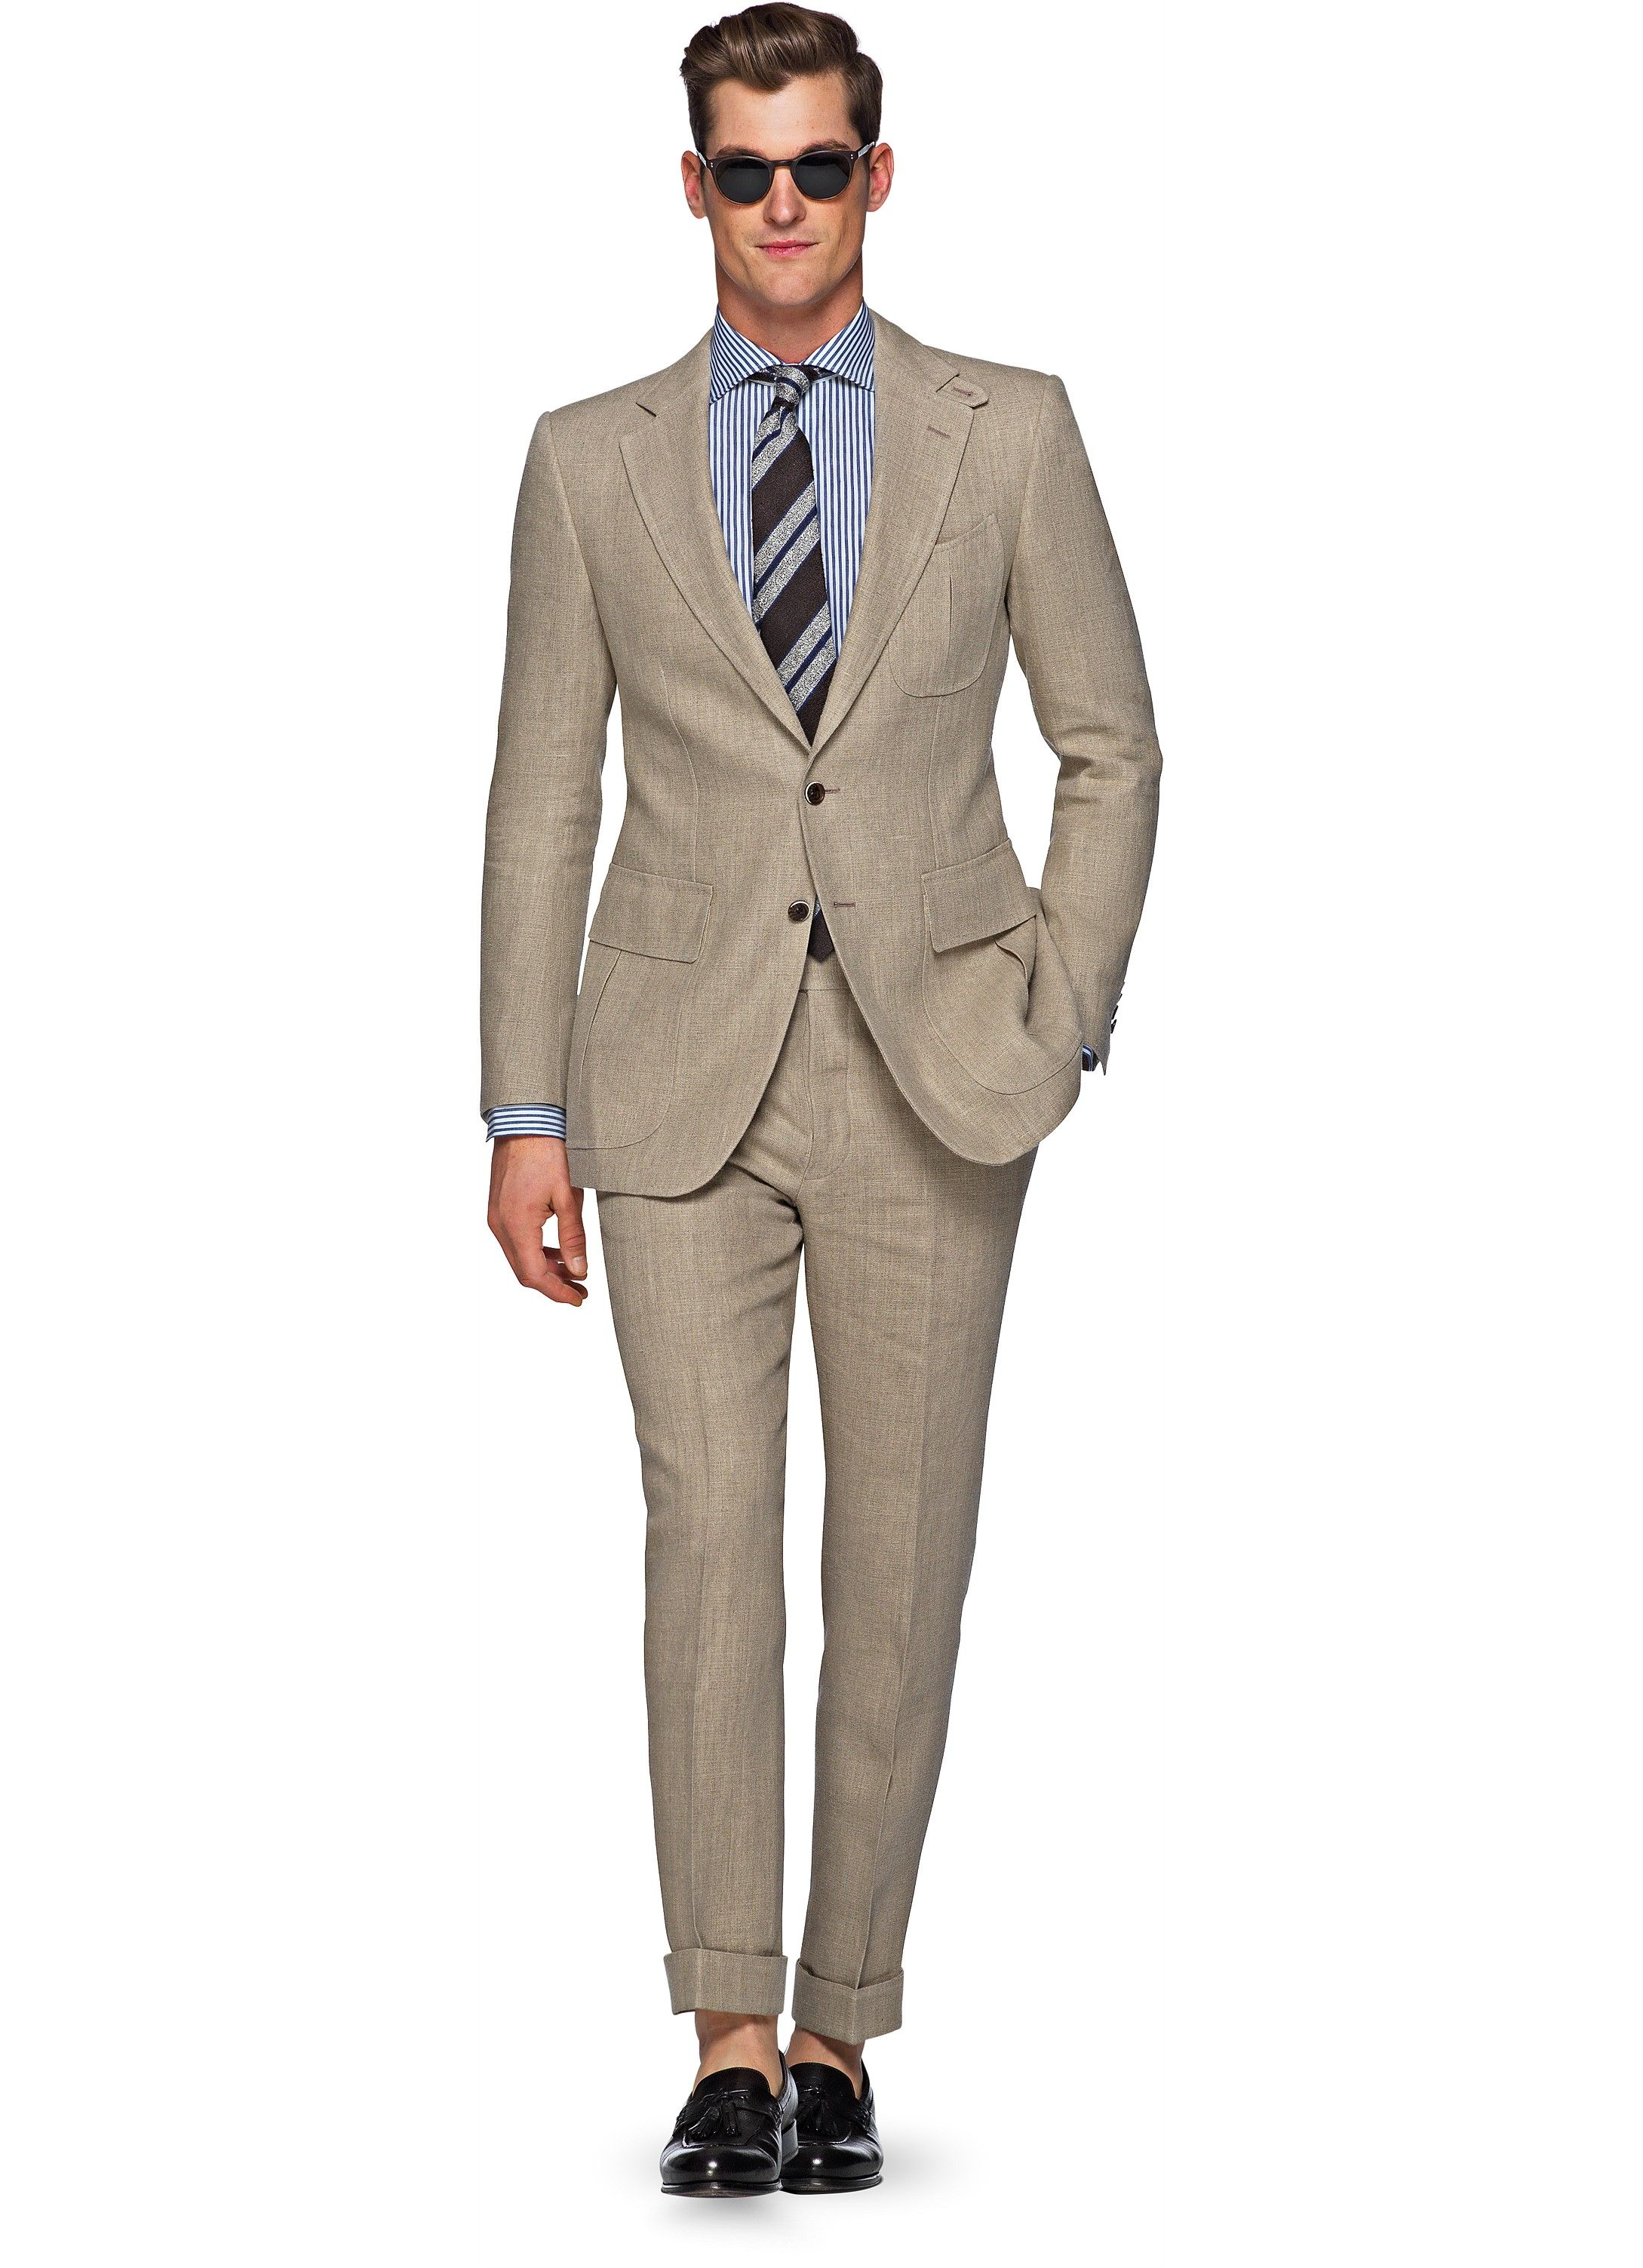 Suit Light Brown Plain Harris P4852i Suitsupply Online Store Terno